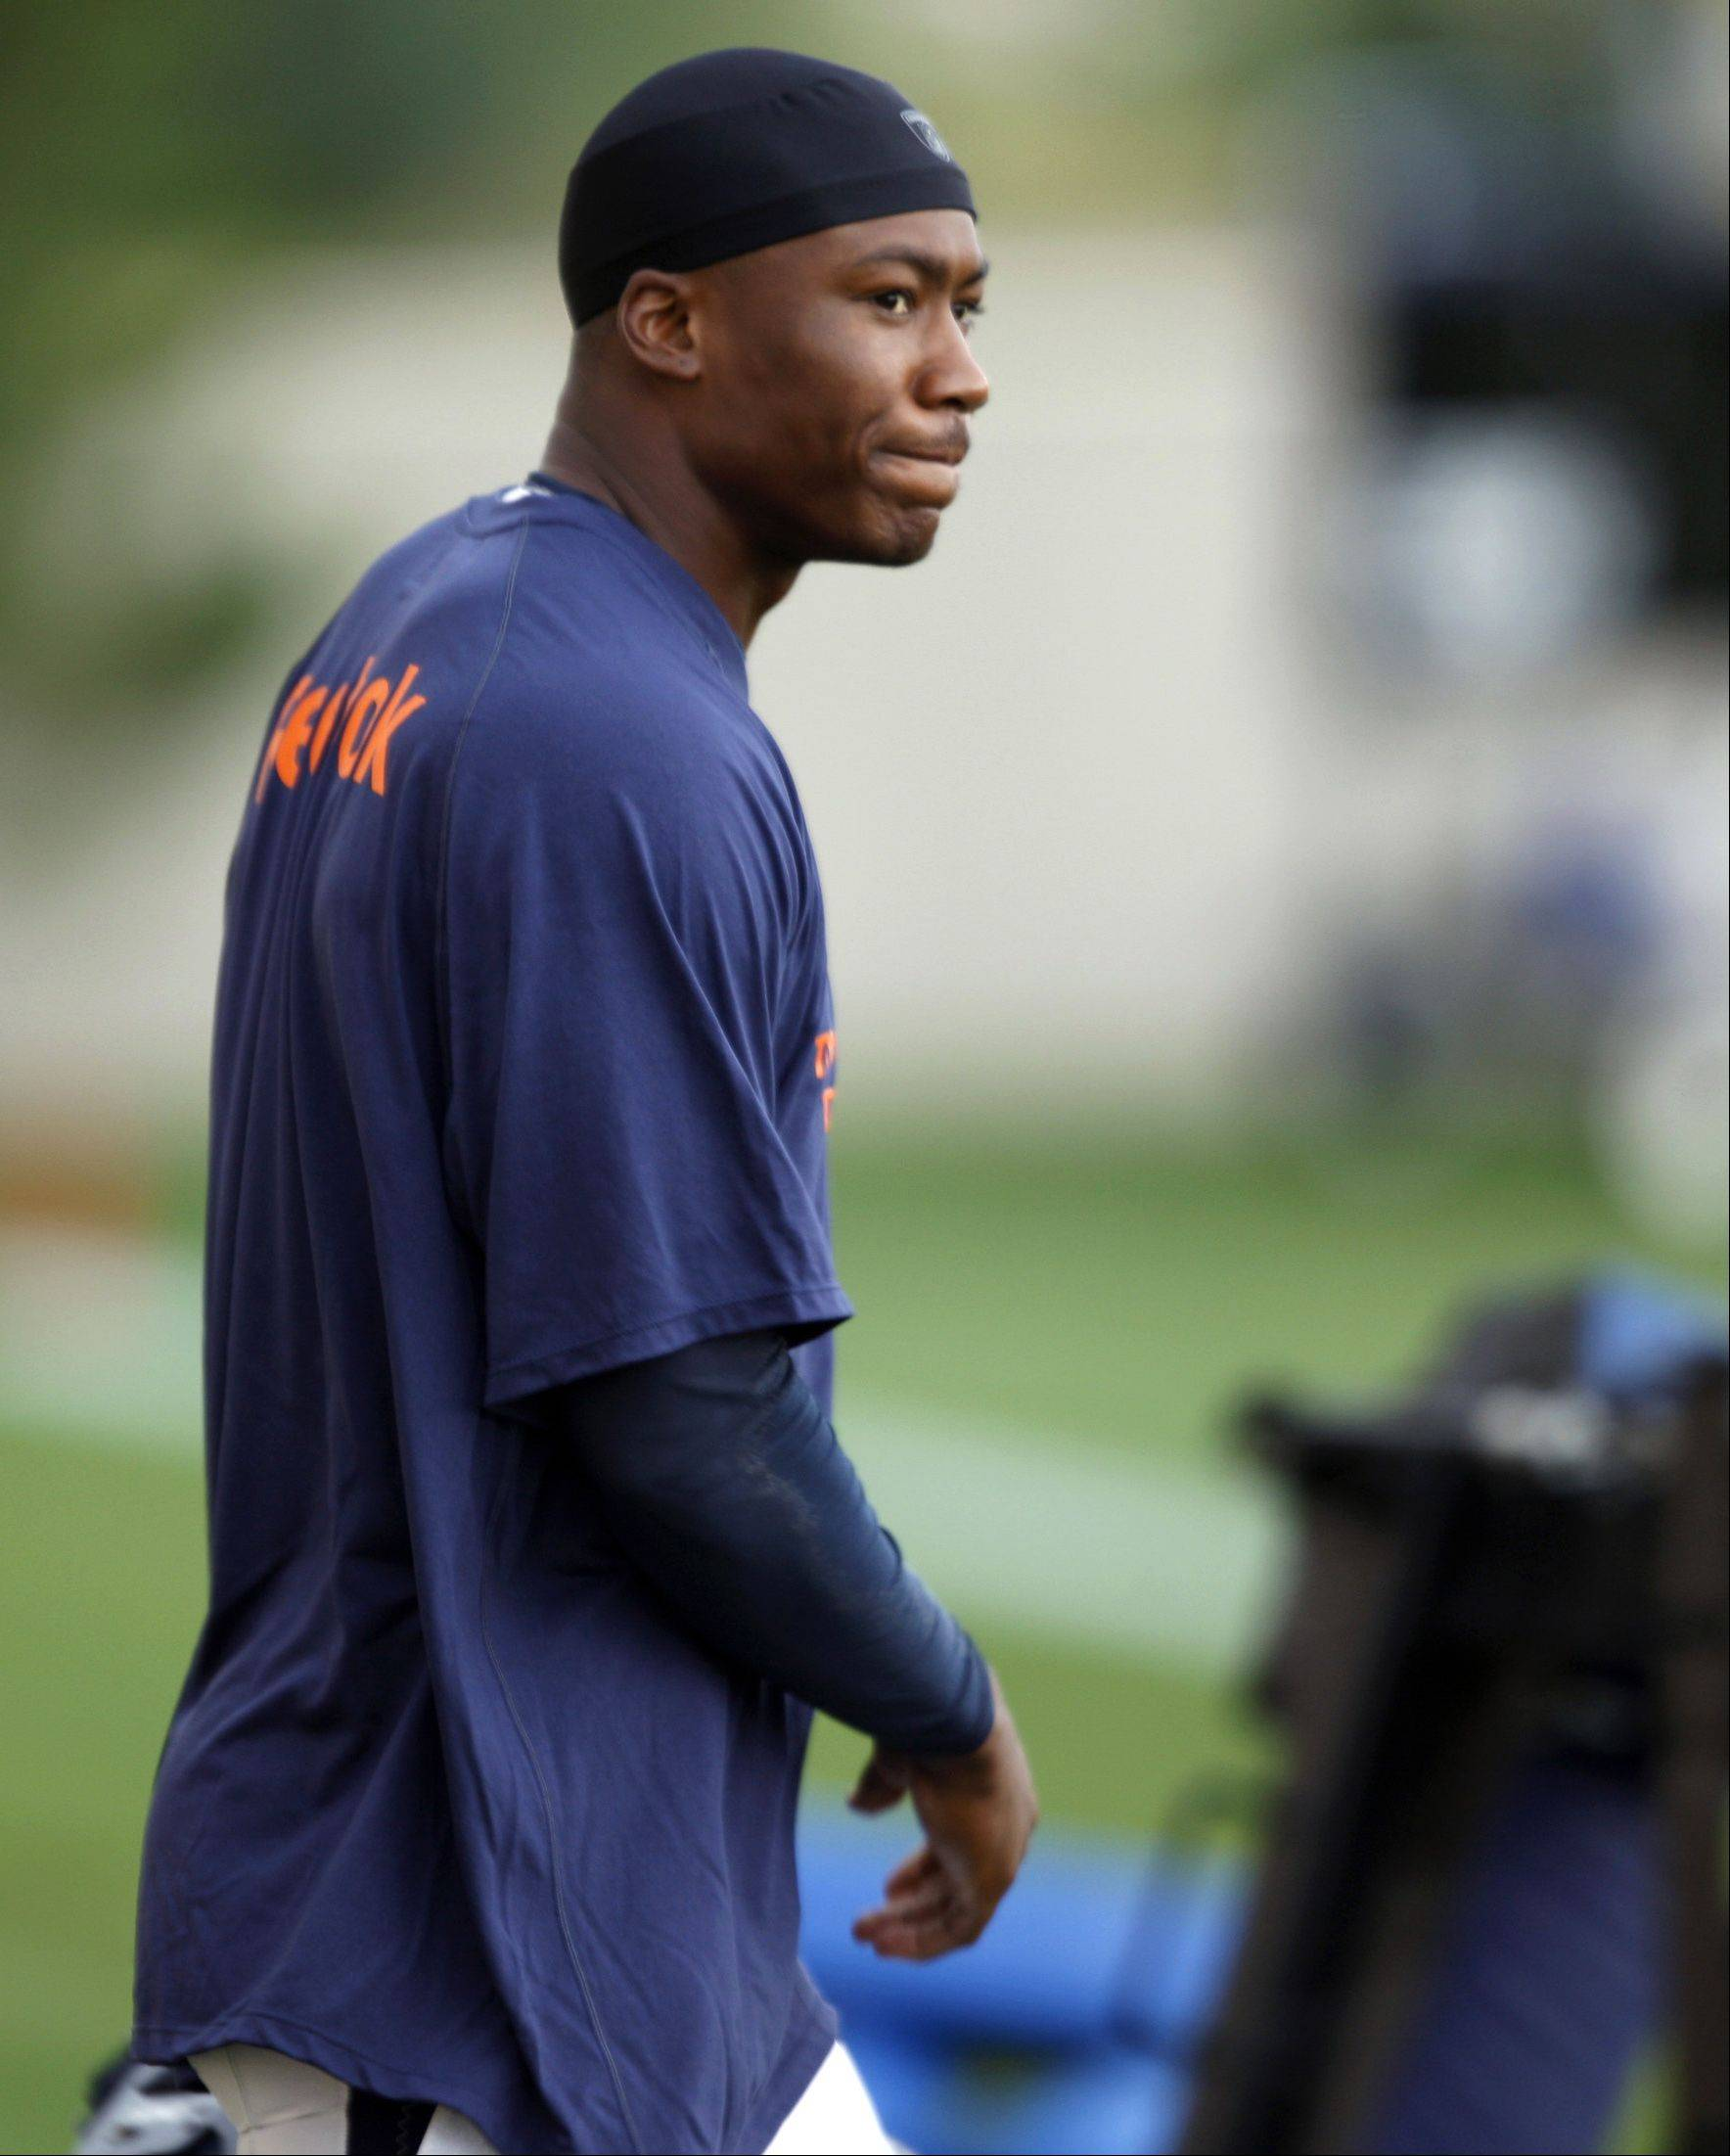 "In this Aug. 18, 2009 file photo, Denver Broncos wide receiver Brandon Marshall heads to the practice field during NFL football training camp in Englewood, Colo. Marshall, openly unhappy with the Broncos, was suspended by the team on Friday, Aug. 28, 2009, for unspecified ""detrimental"" conduct. The club did not say in its 15-word statement how long the suspension would last."